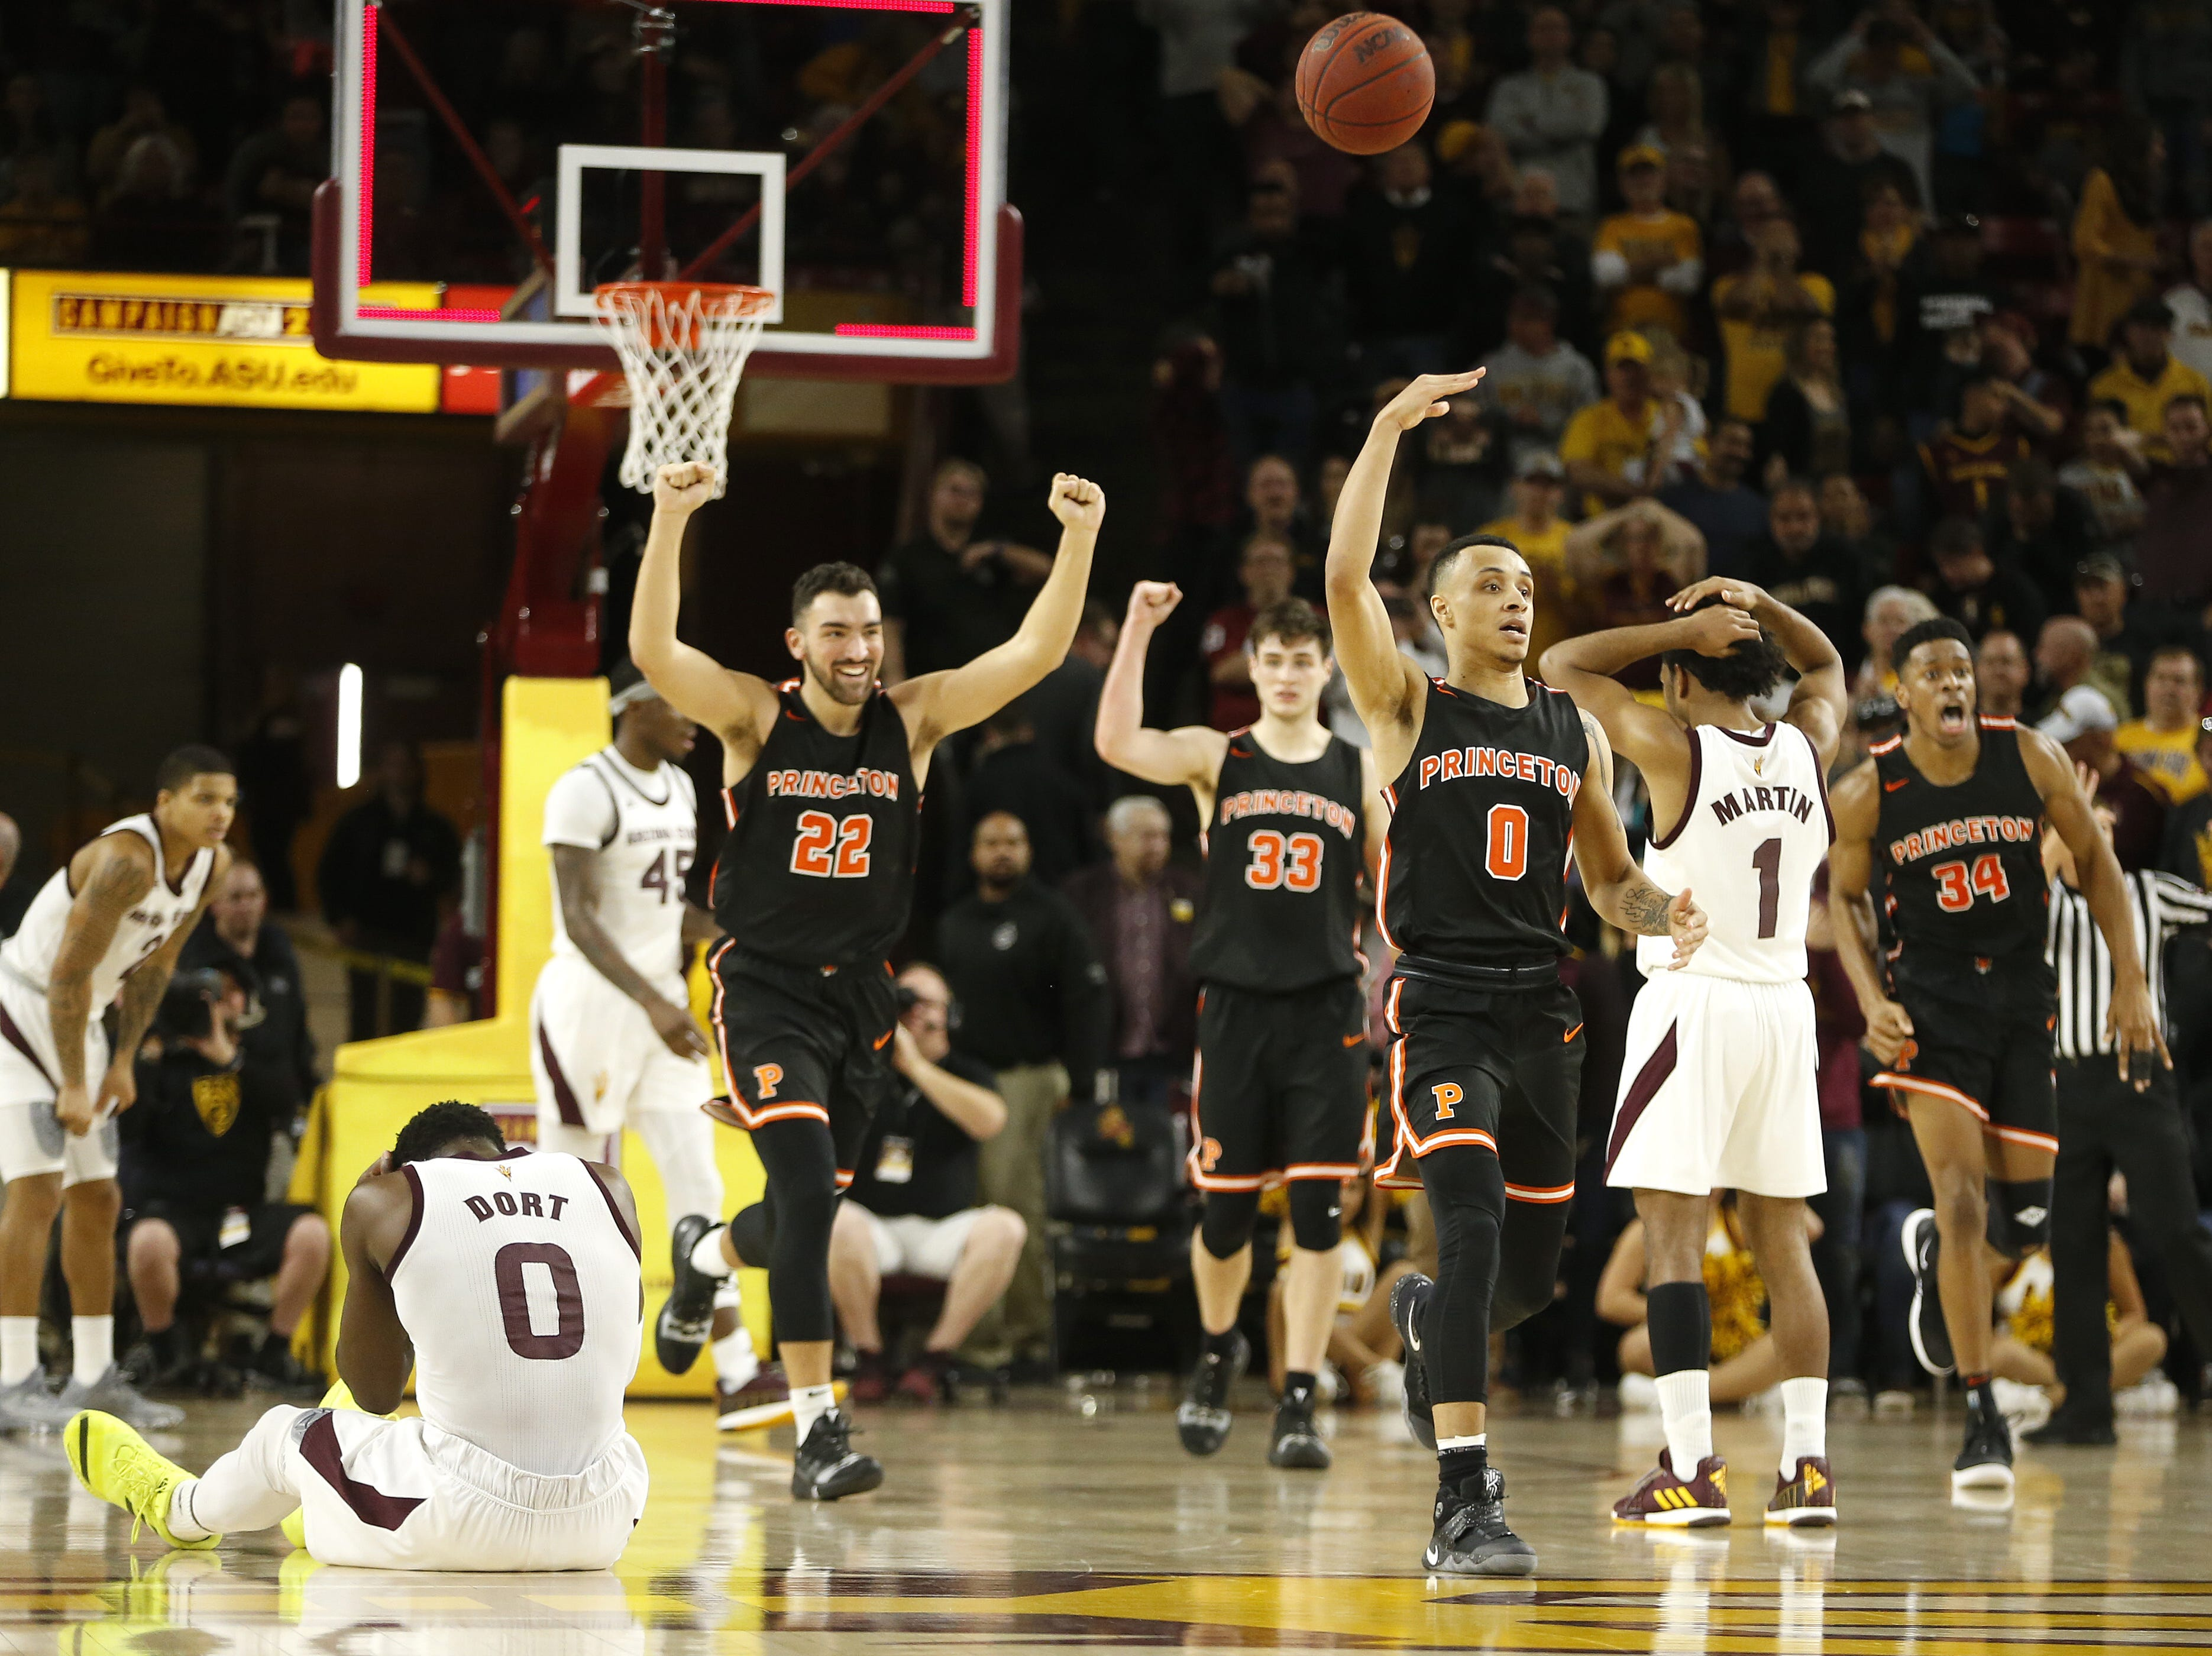 Princeton's Jaelin Llewellyn (0) tosses the ball in celebration after ASU's Luguentz Dort (0) missed a potential game-winning shot sealing the 67-66 Princeton win at Wells Fargo Arena in Tempe, Ariz. on December 29, 2018.